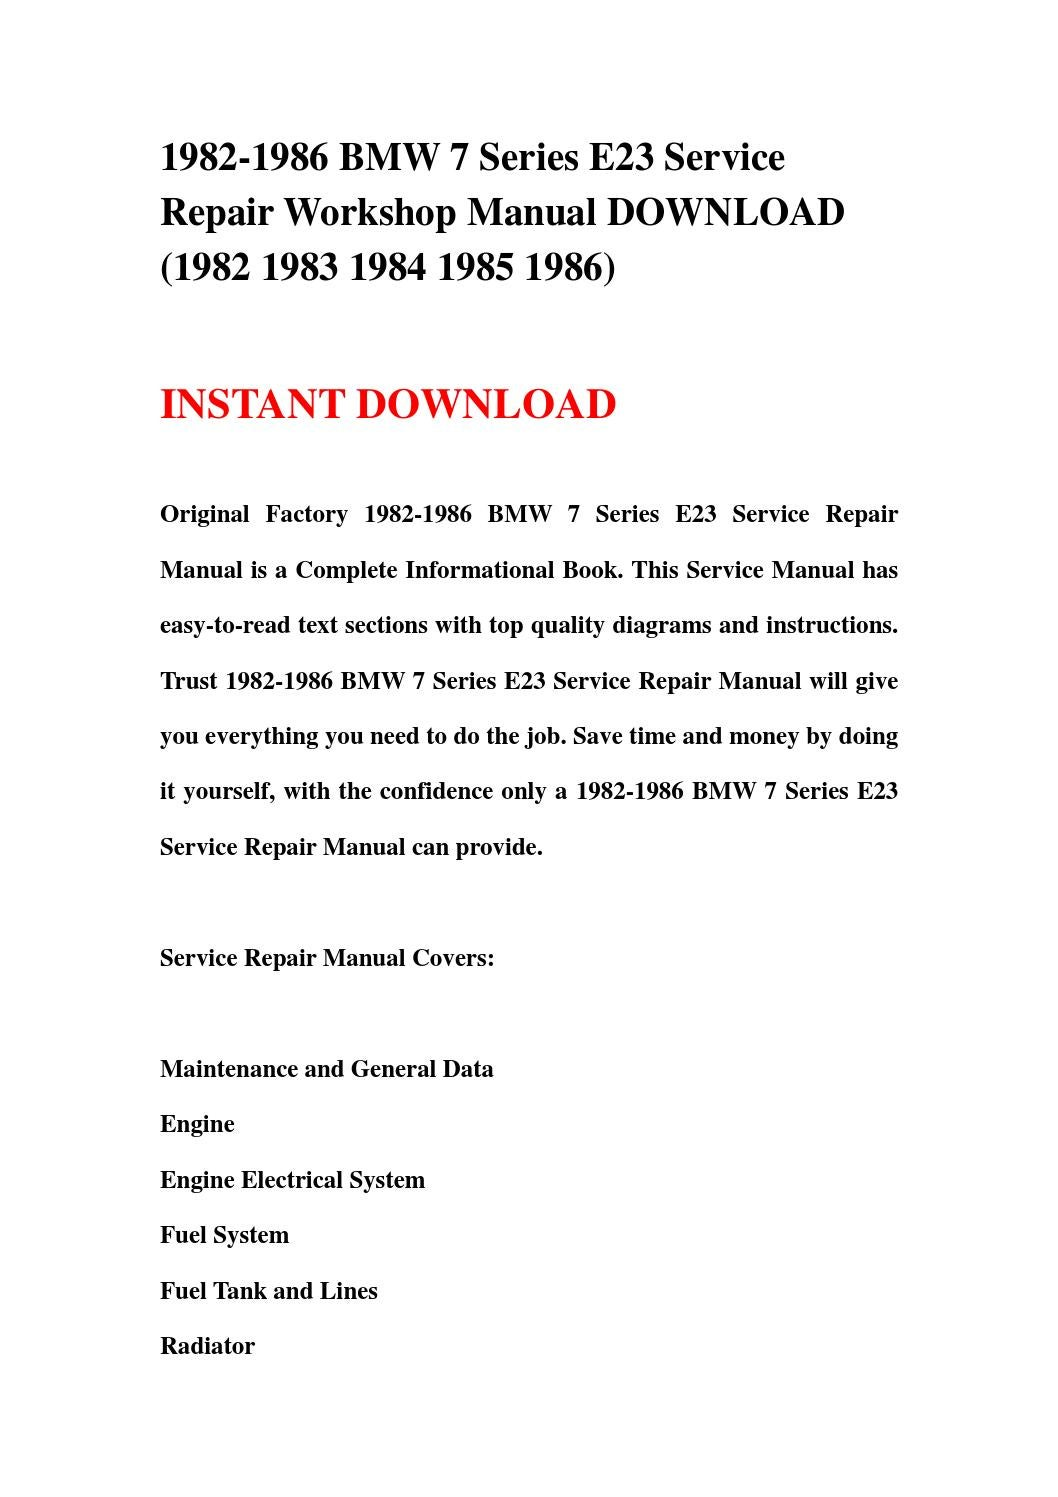 April 2017 1982 1986 bmw 7 series e23 service repair workshop manual download fandeluxe Image collections